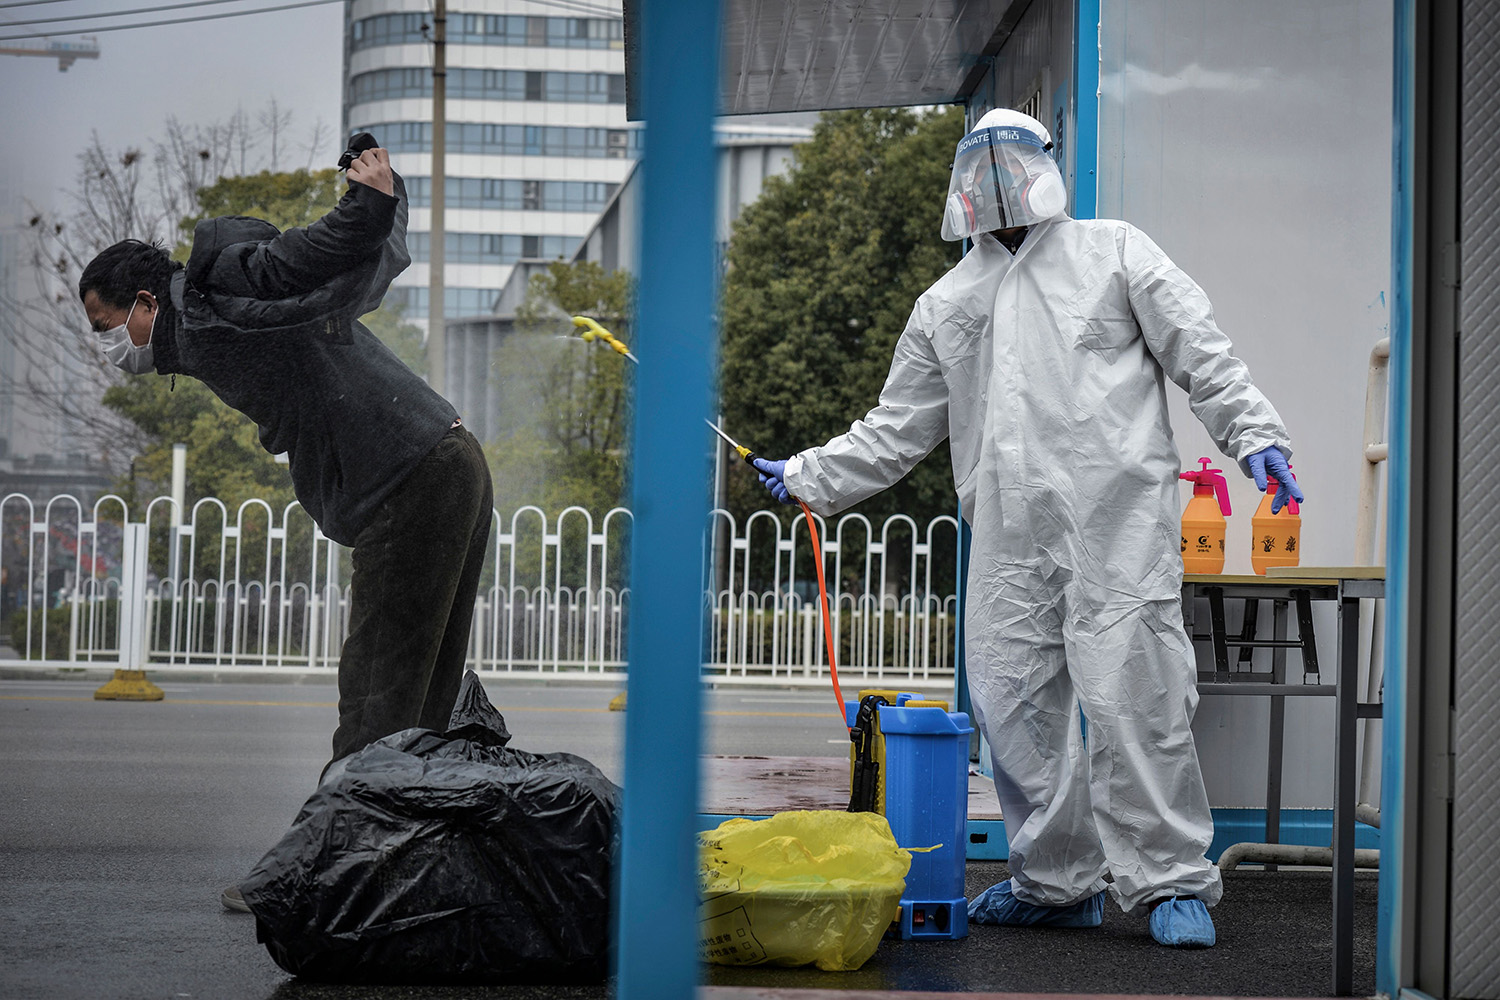 A man who has recovered from the novel coronavirus is  disinfected by medical staff before leaving a hospital in Wuhan, China, on Feb. 22. STR/AFP via Getty Images